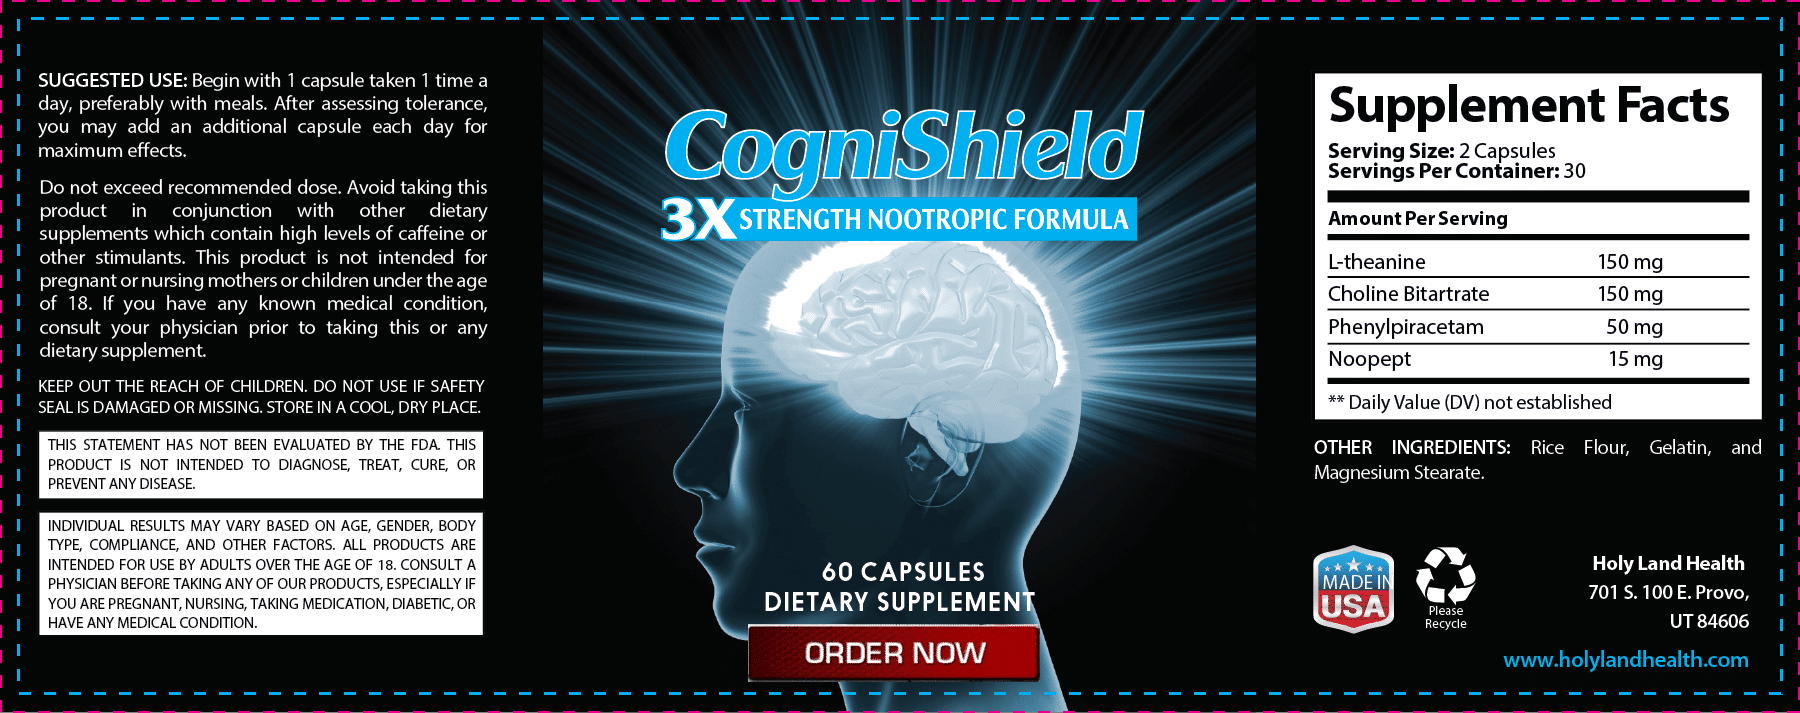 CogniShield Review – Do The Ingredients Actually Improve Brain Function and Memory?